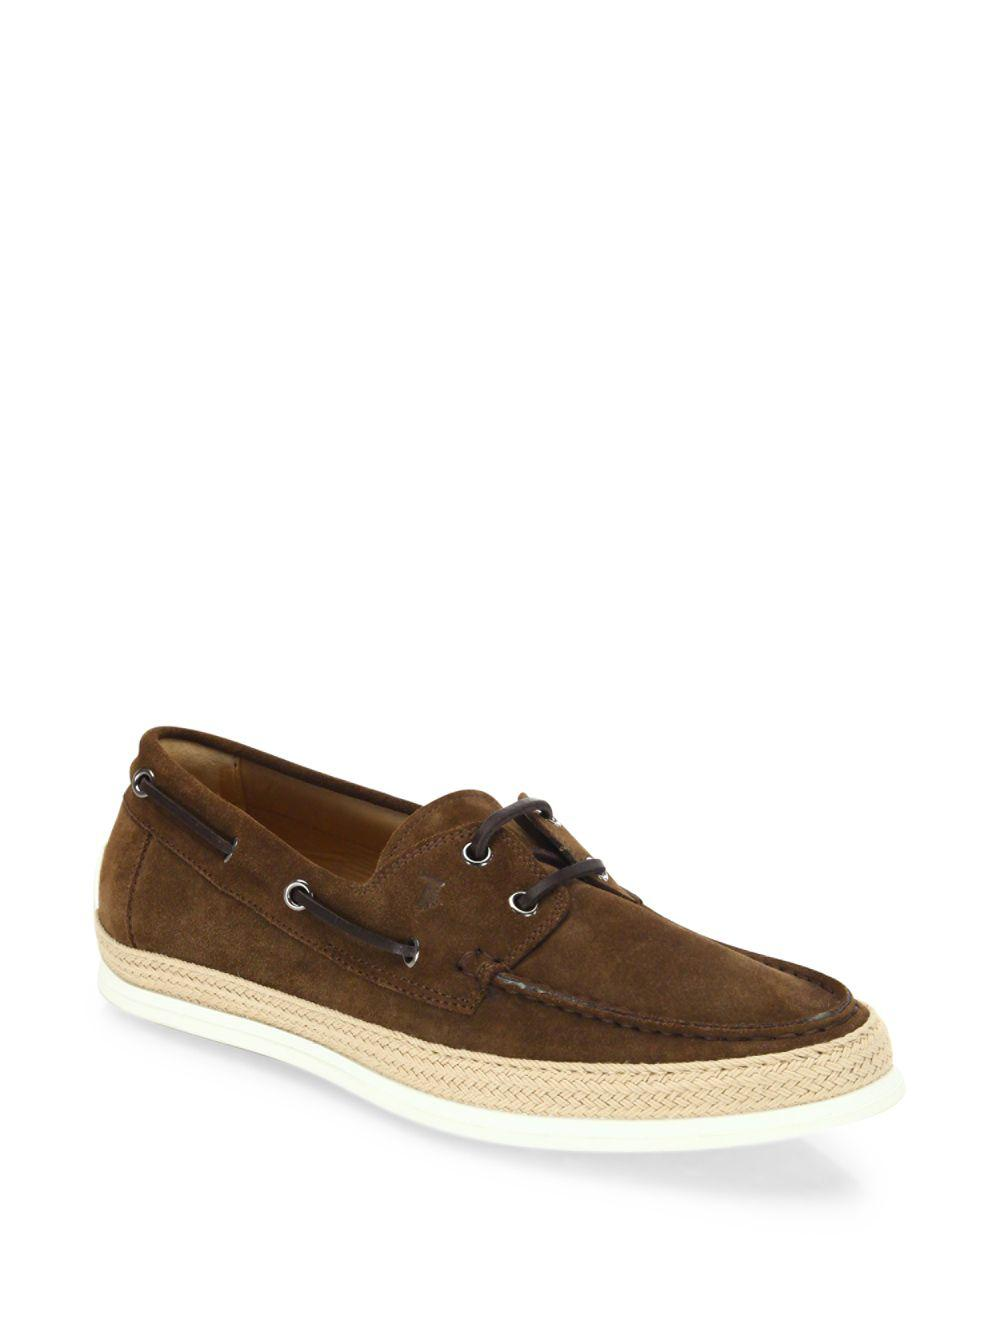 7d834ae86527f8 Tod s - Brown Suede Espadrille Boat Sneakers for Men - Lyst. View fullscreen